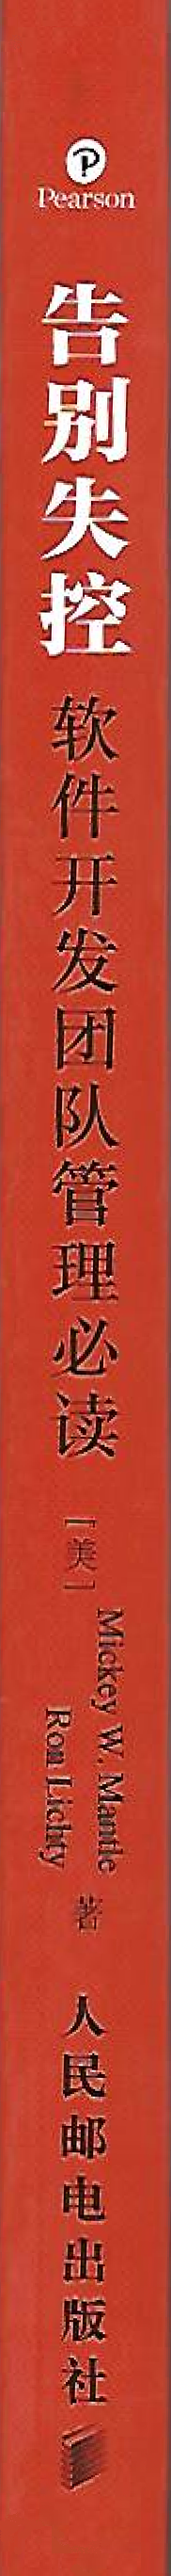 back cover: Managing the Unmanageable, translated into simplified Chinese